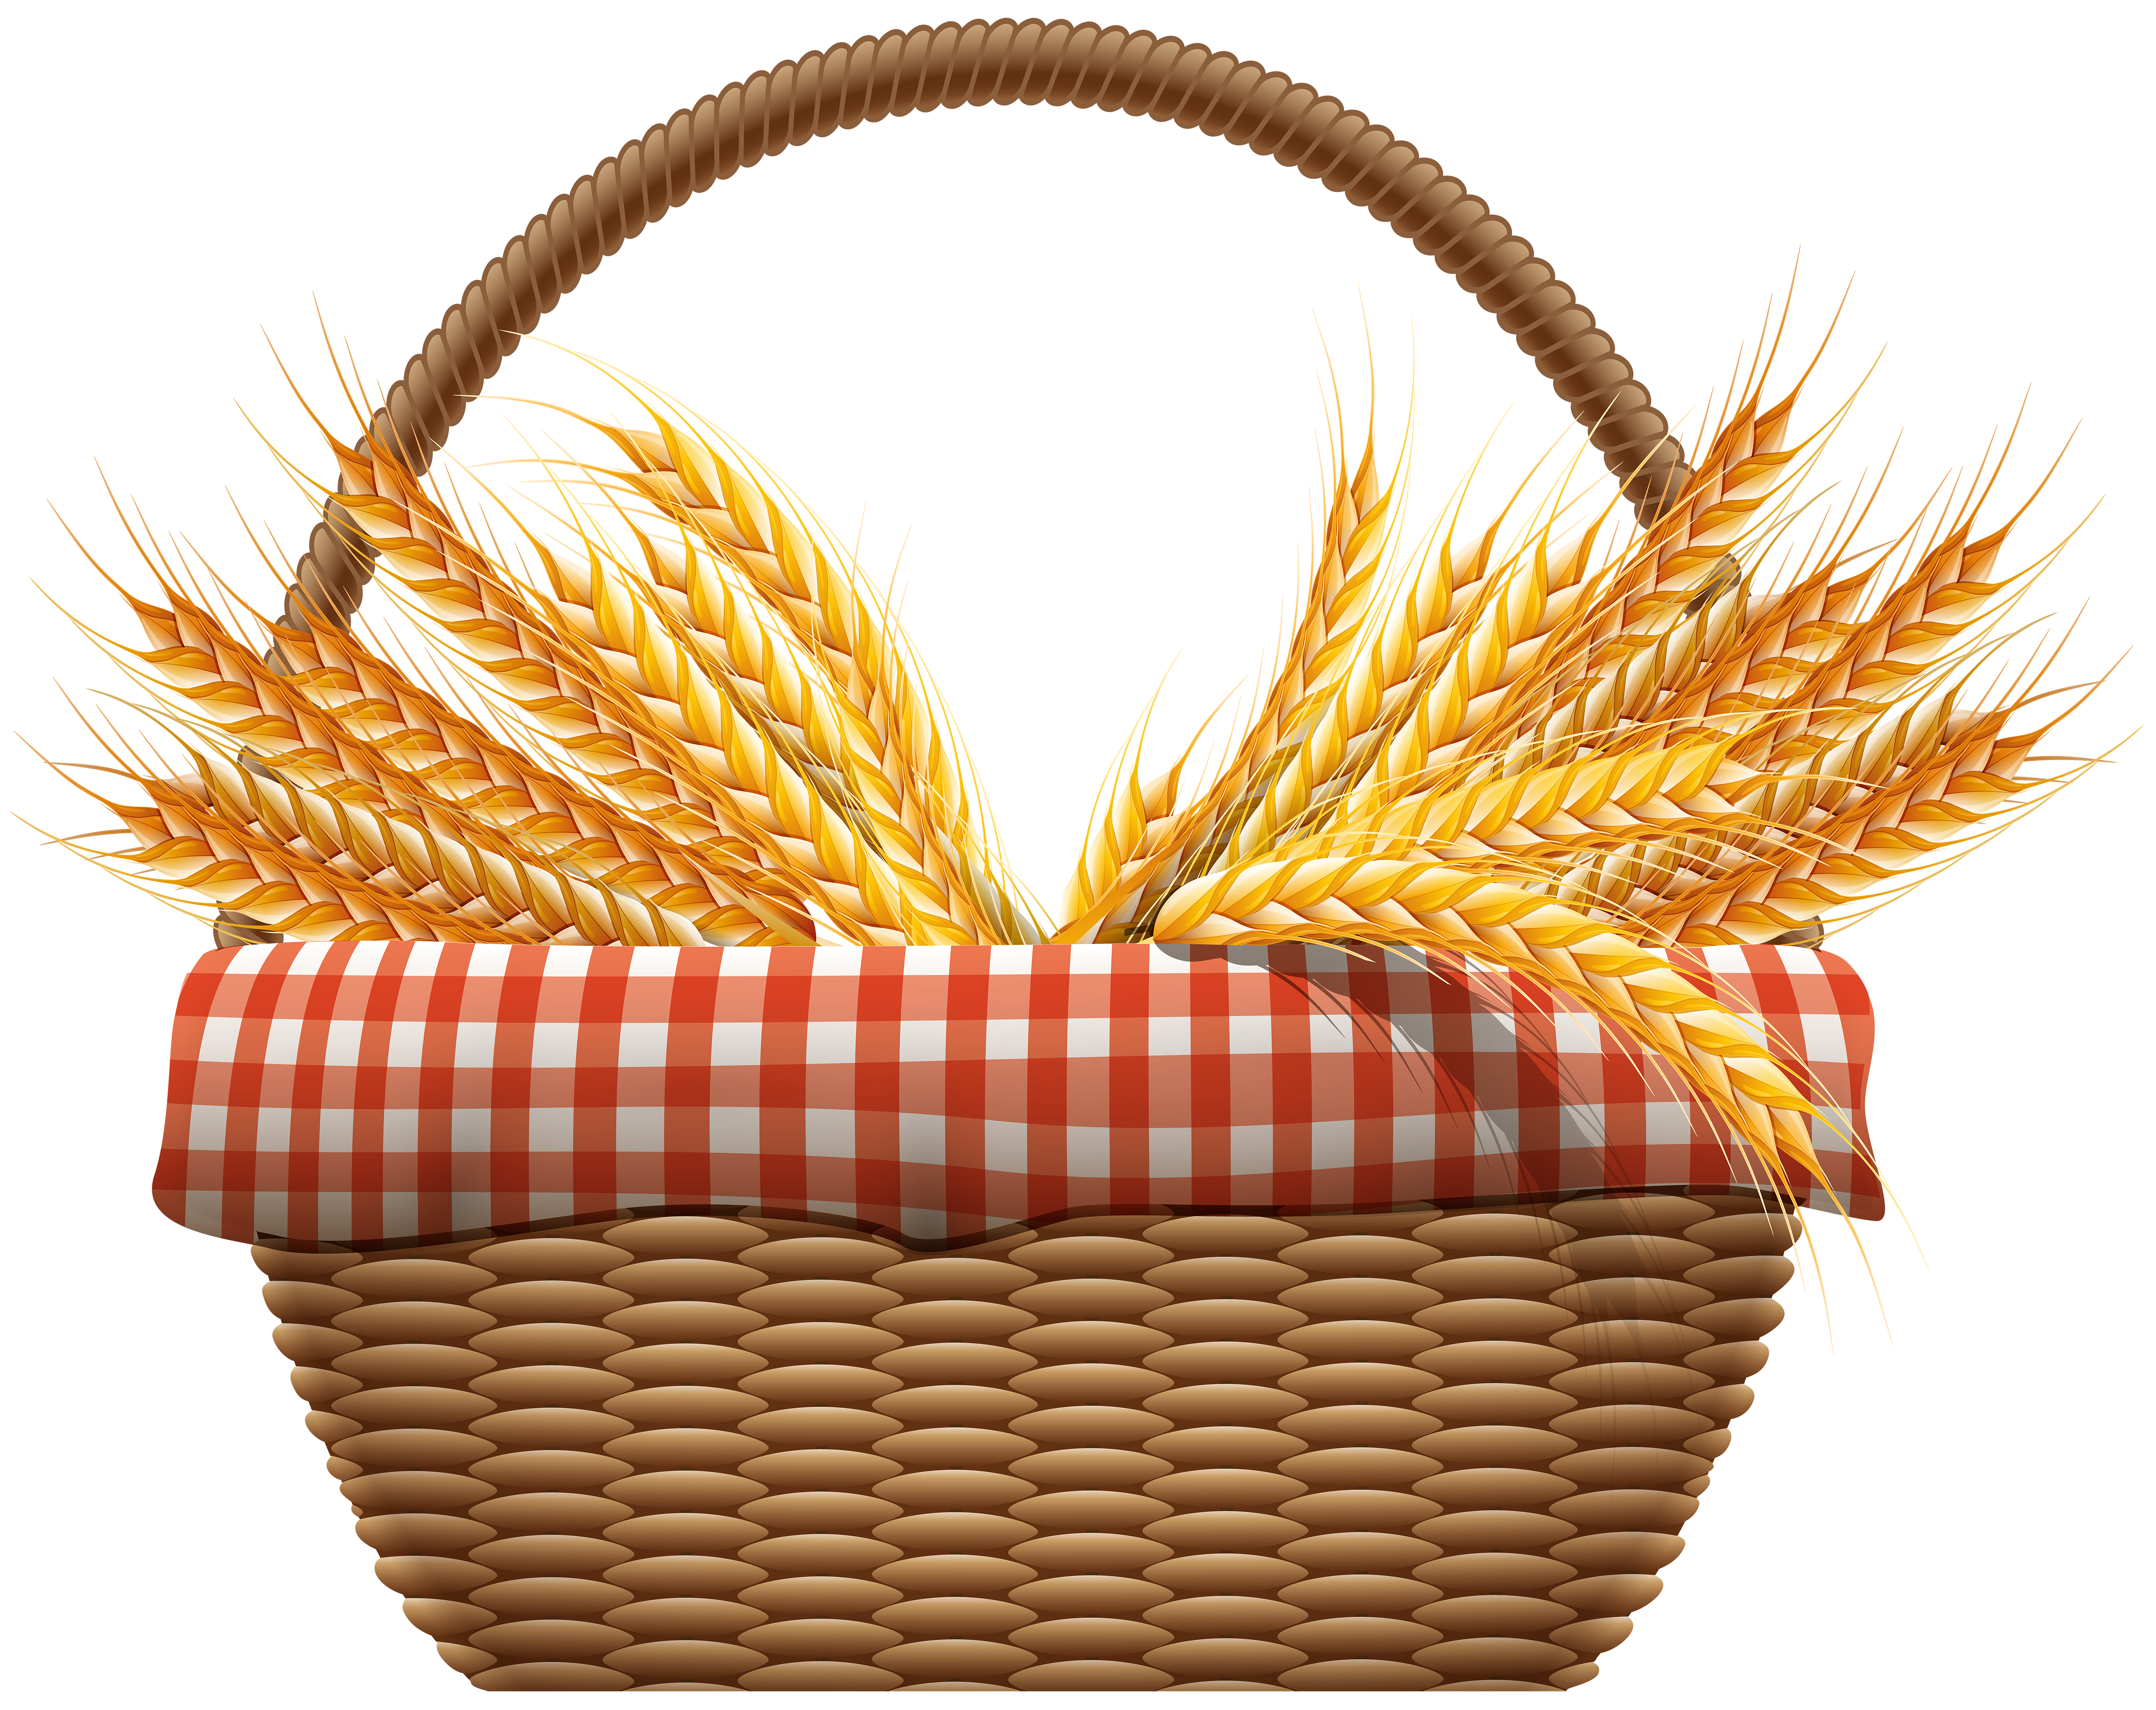 5000x3966 Collection Of Free Basket Vector Psd. Download On Ubisafe